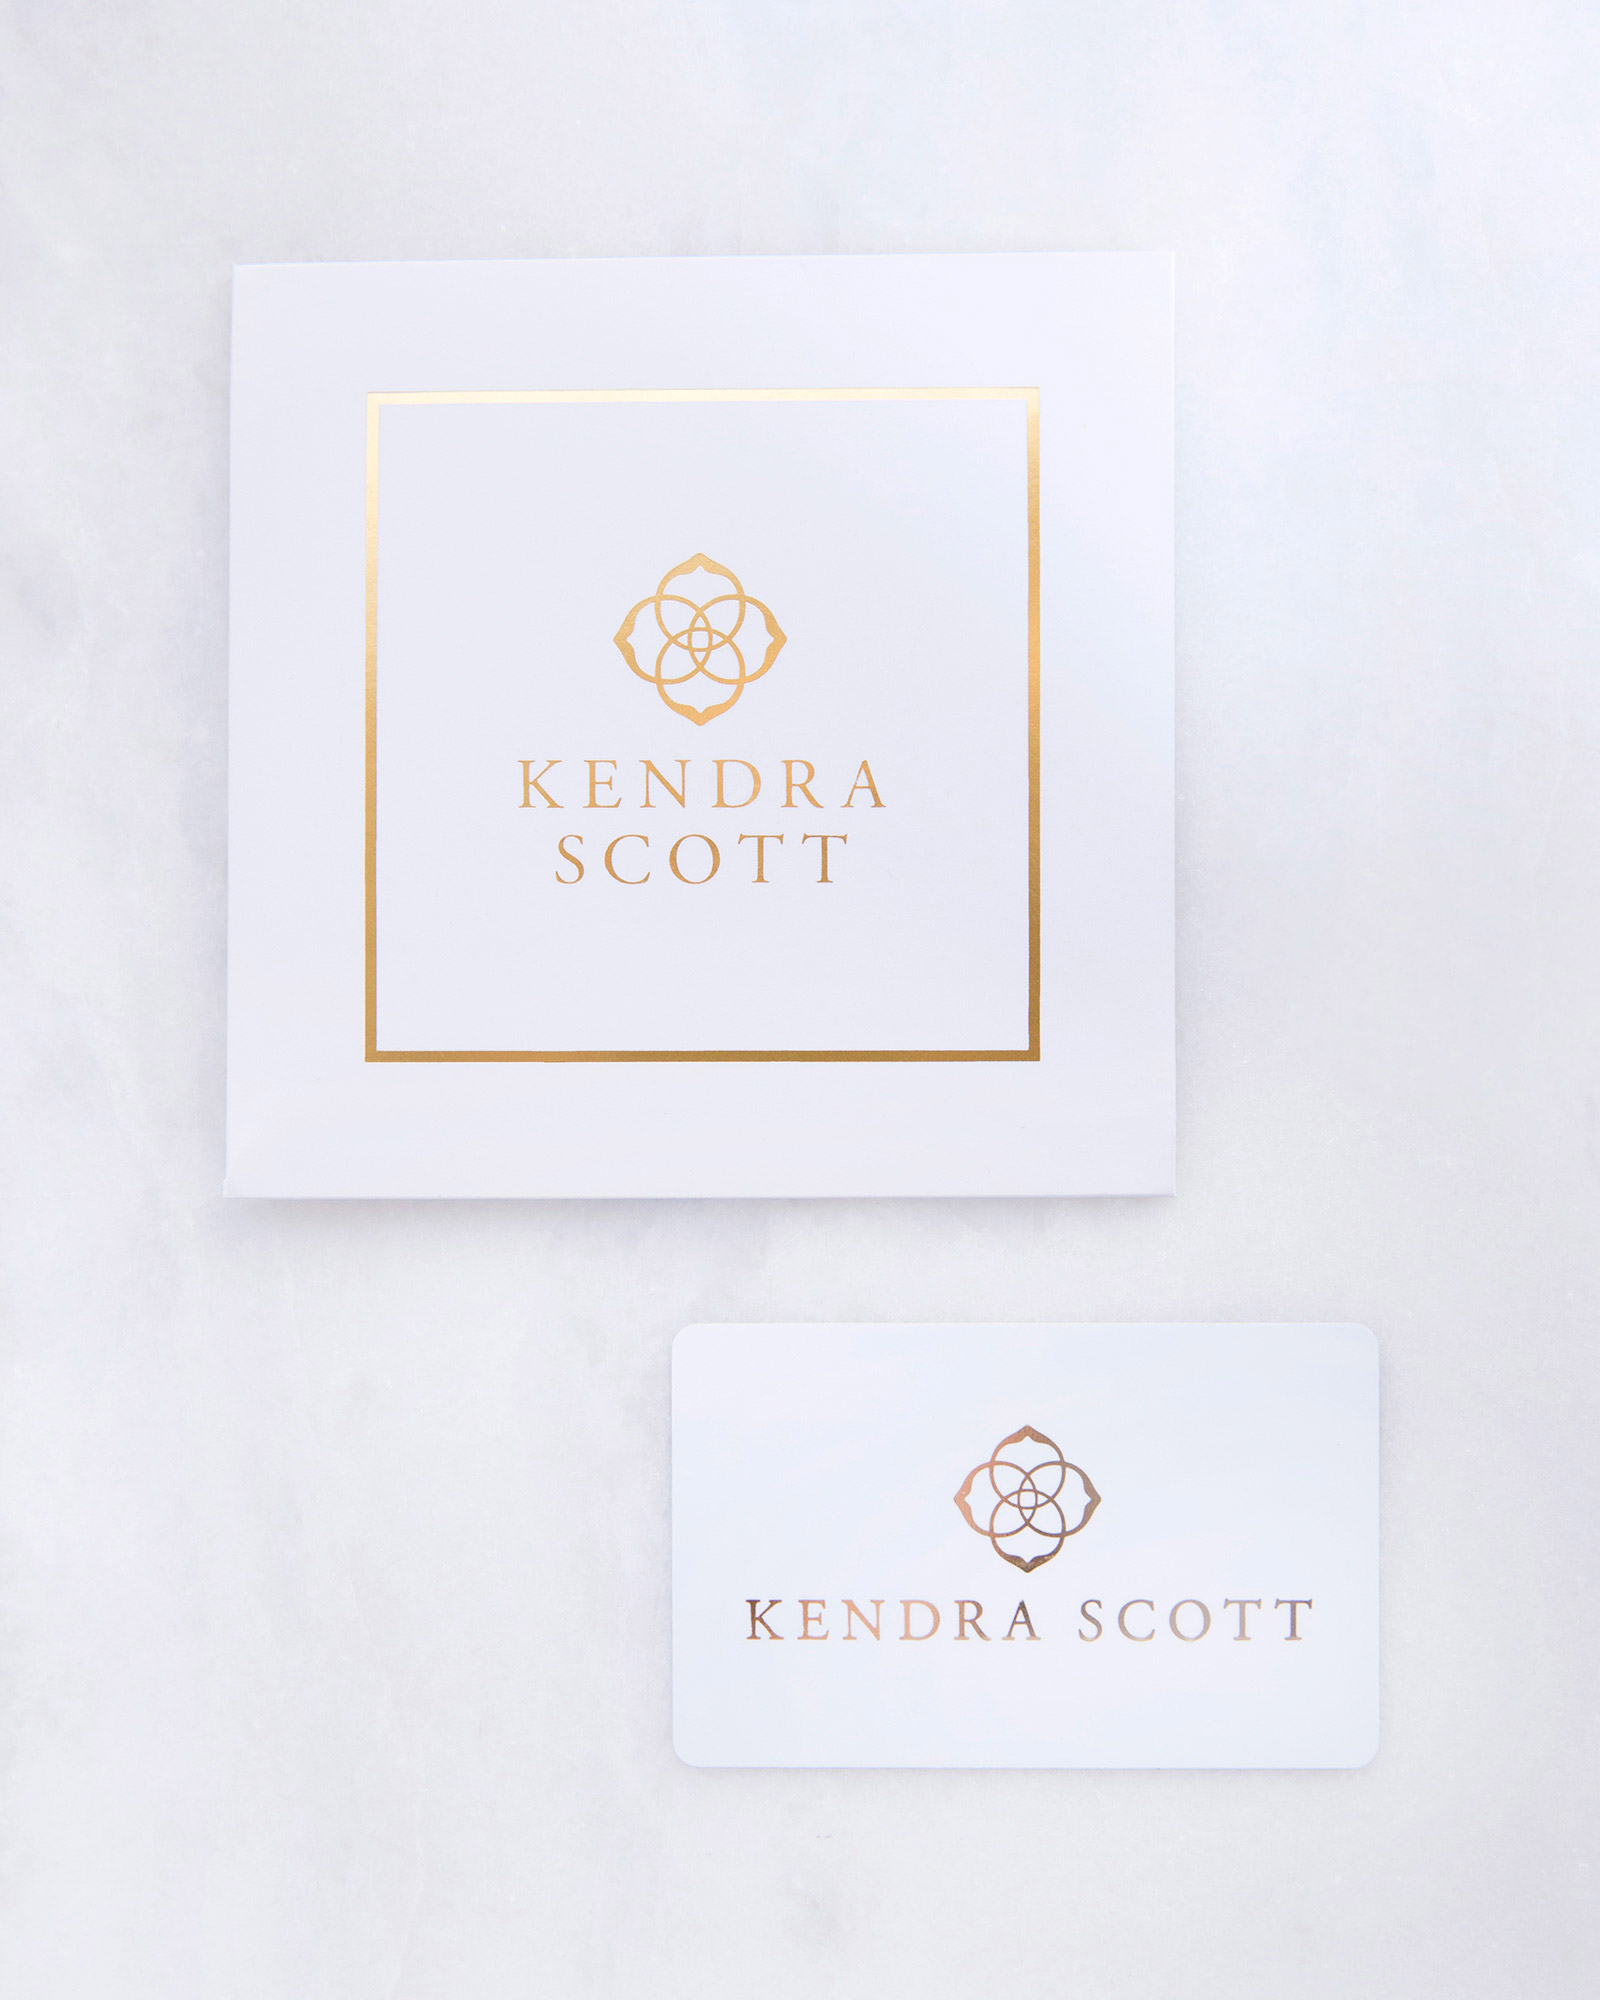 Kendra Scott Gift Card